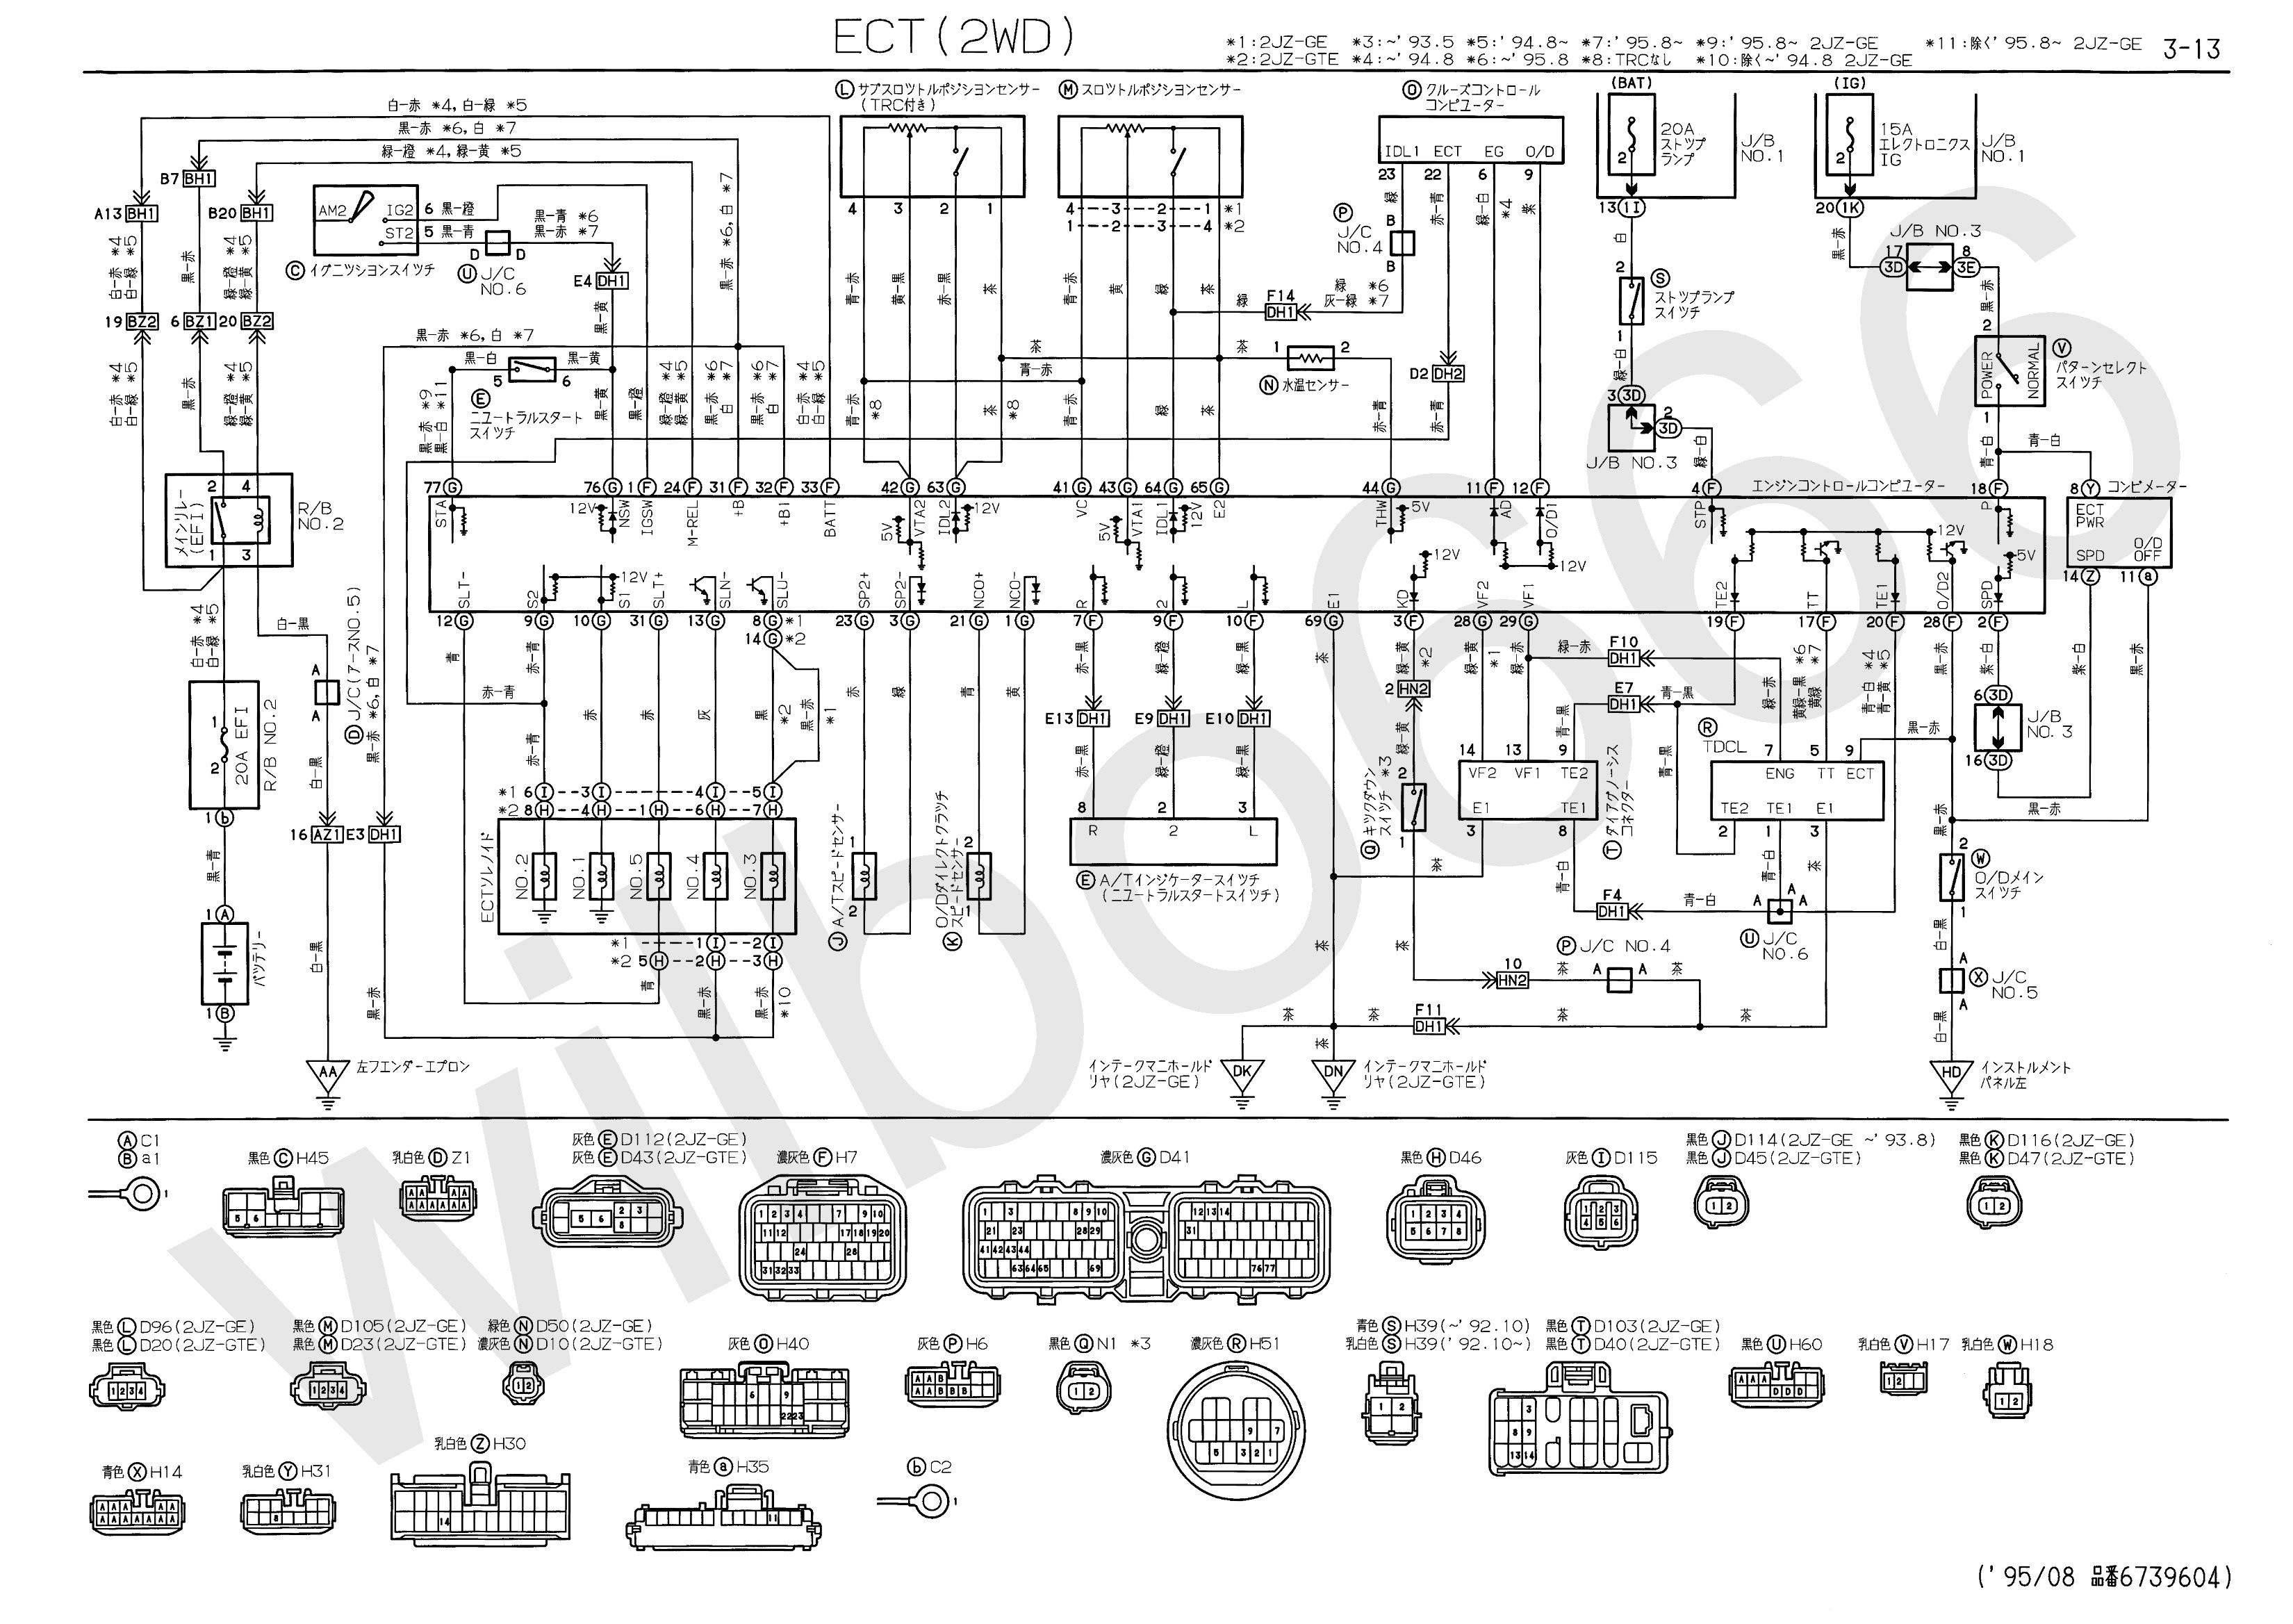 John Deere 160 Wiring Diagram Detailed Schematics Electrical Diagrams For Best Of Image Sabre